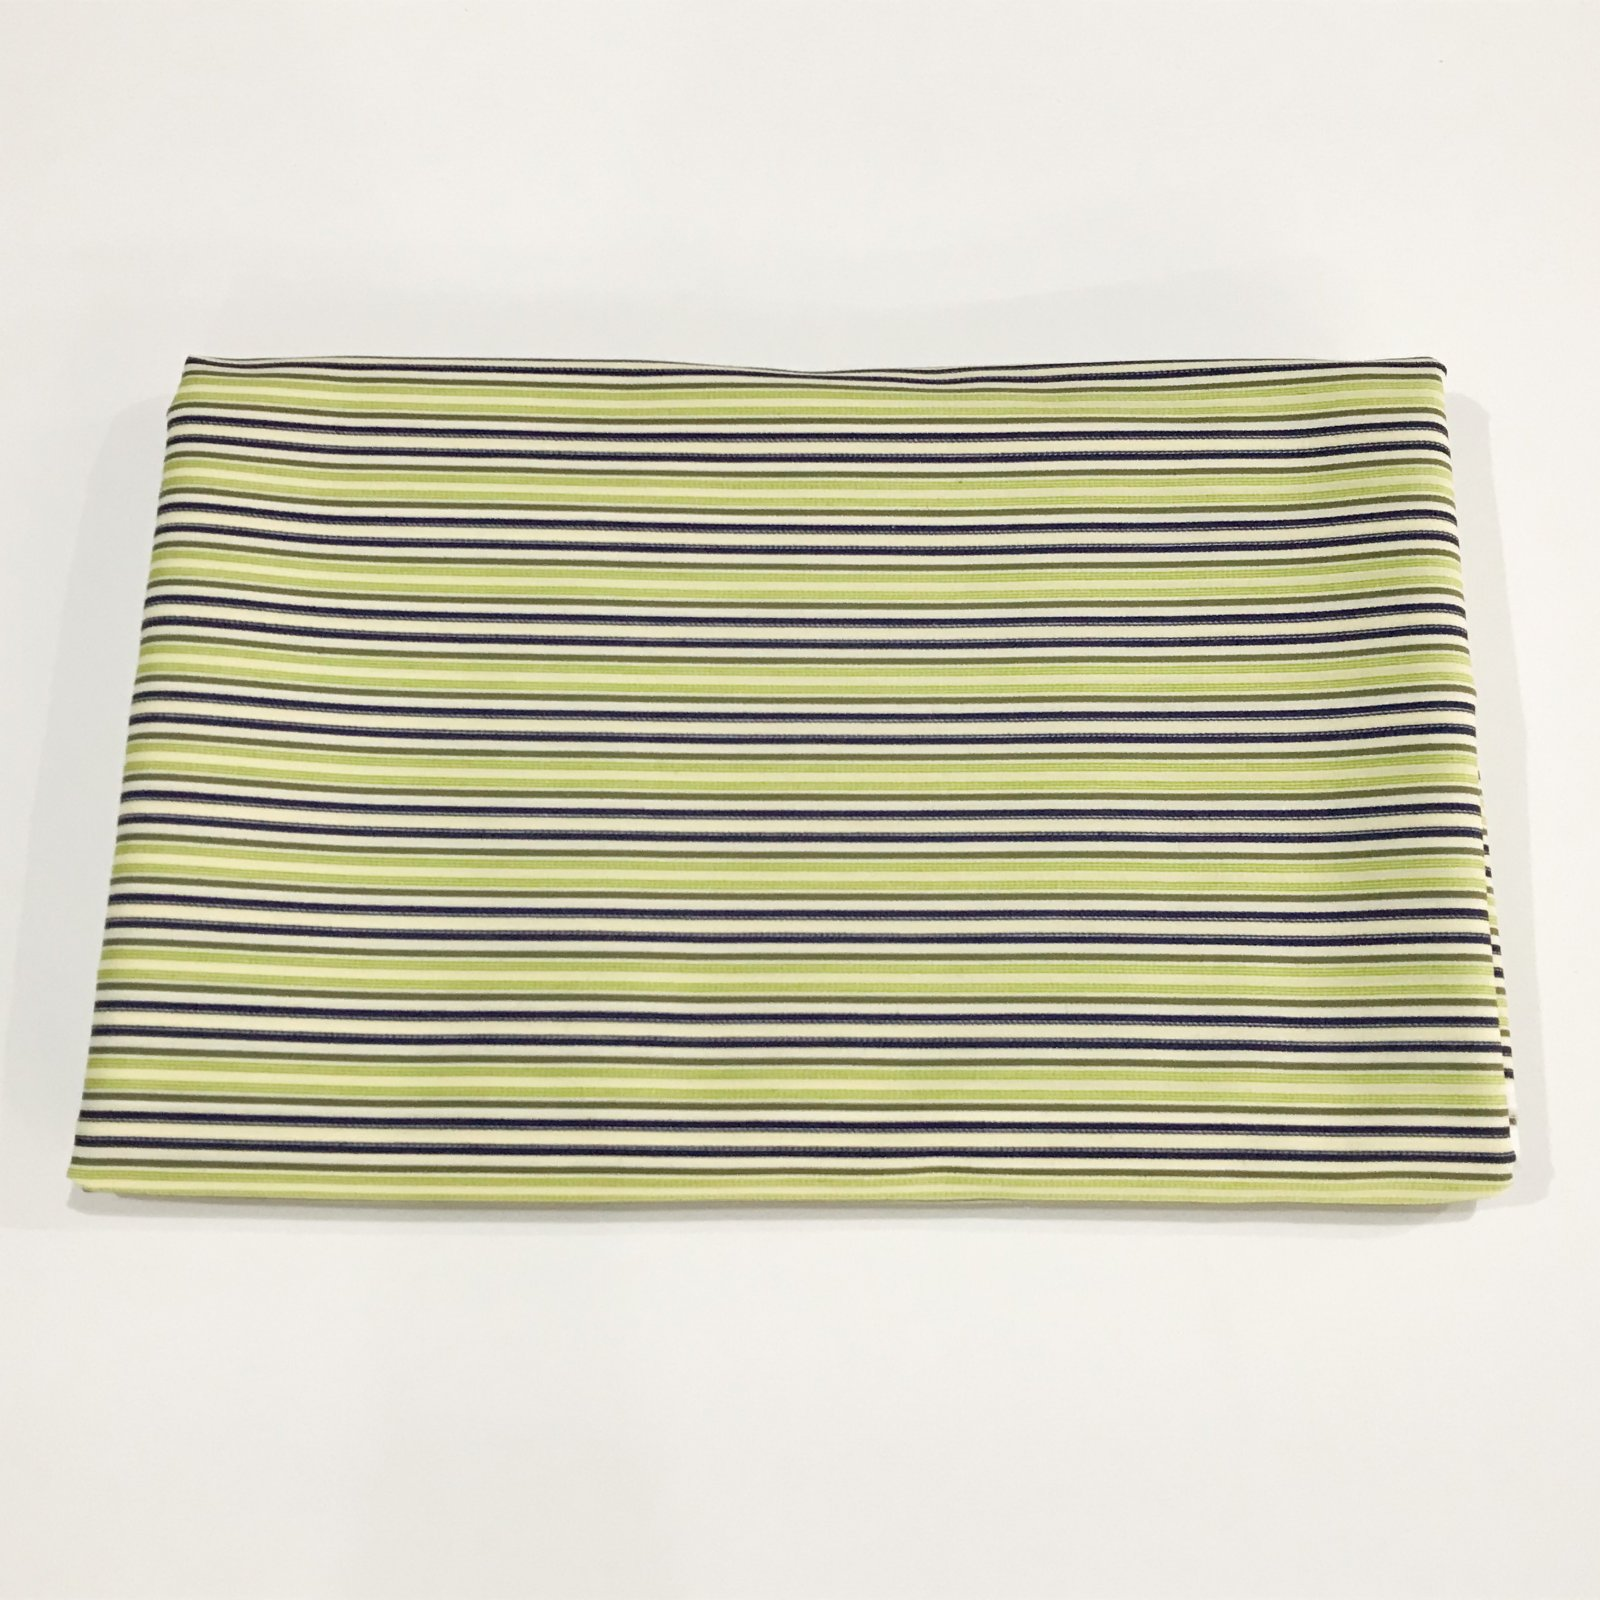 2 yards + 21 inches - Cotton - Bright Spring Stripes